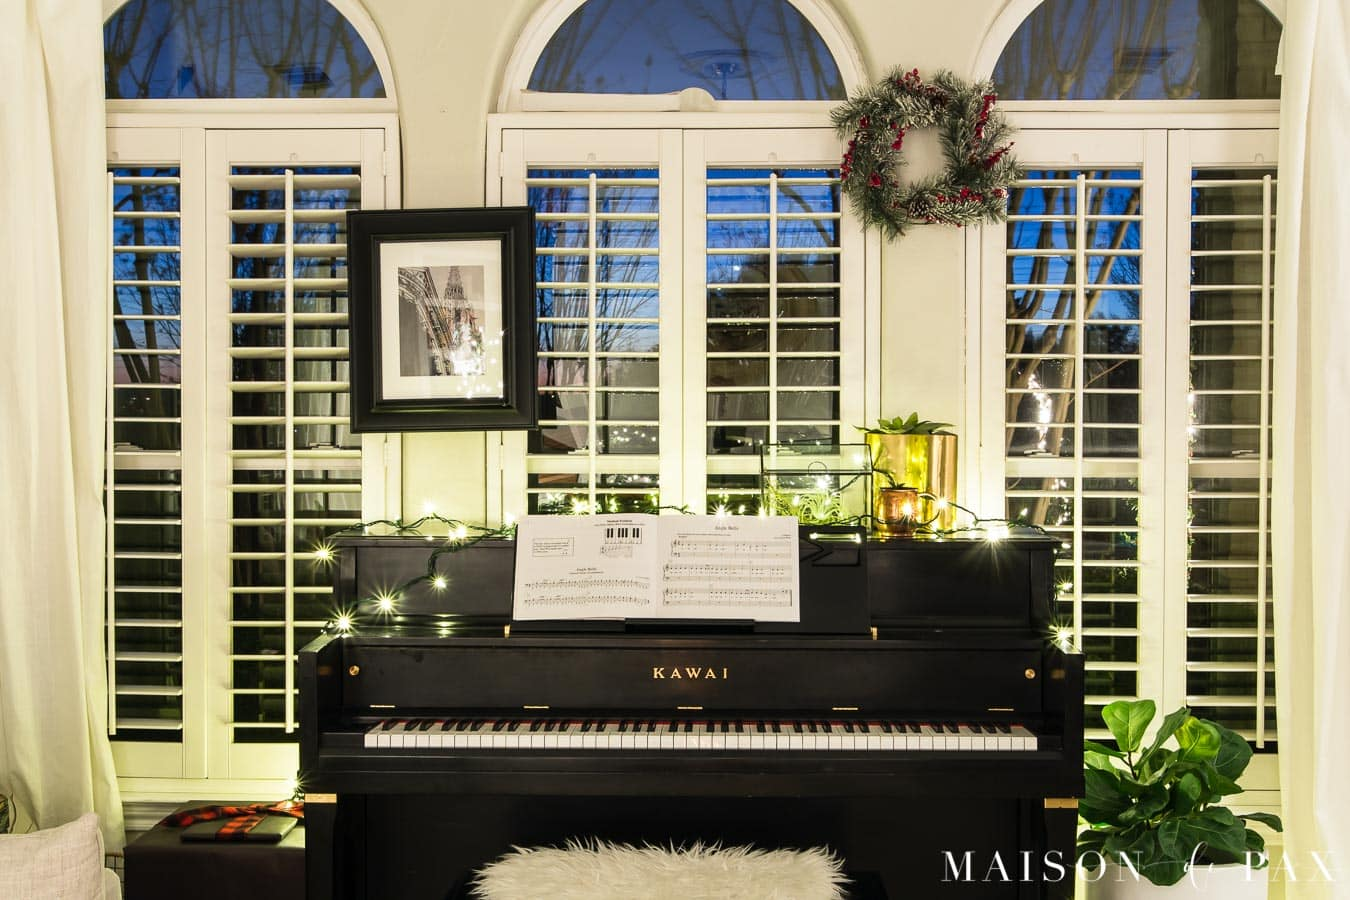 piano with string of Christmas lights | Maison de Pax